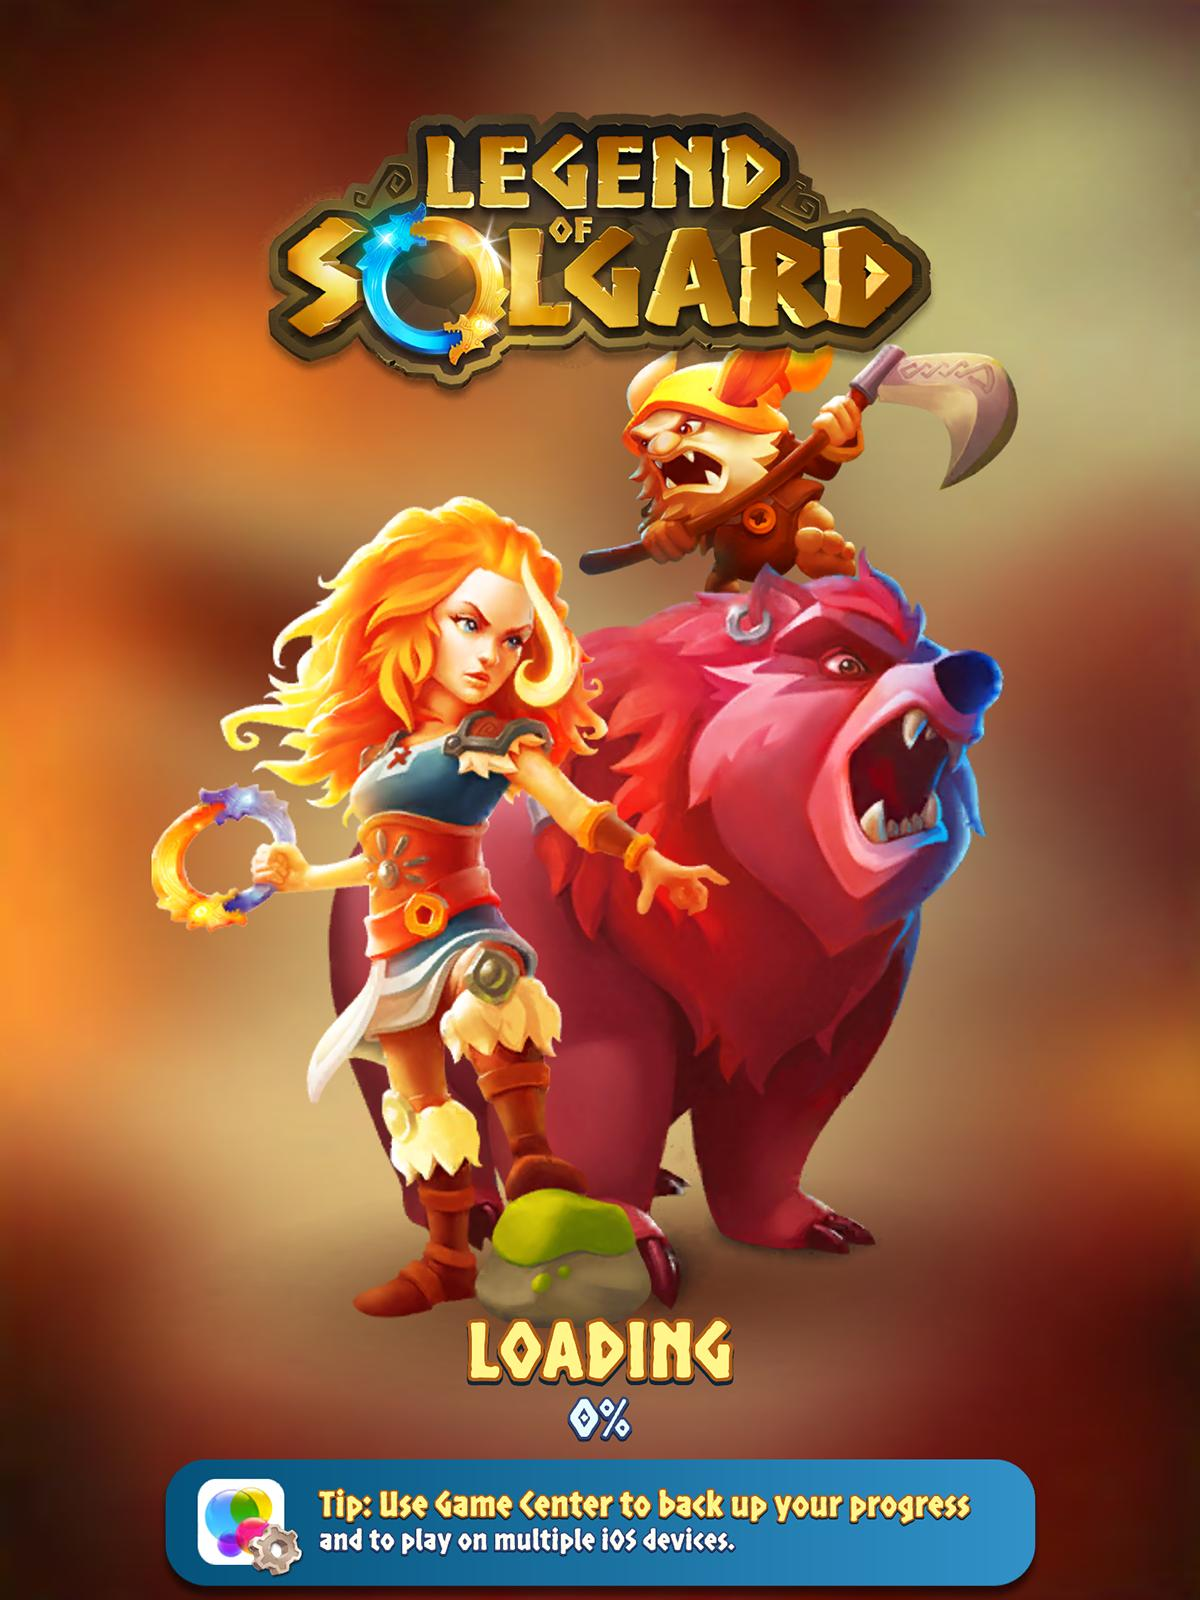 Legend of Solgard cheats and tips - How to get enough energy to clear the game